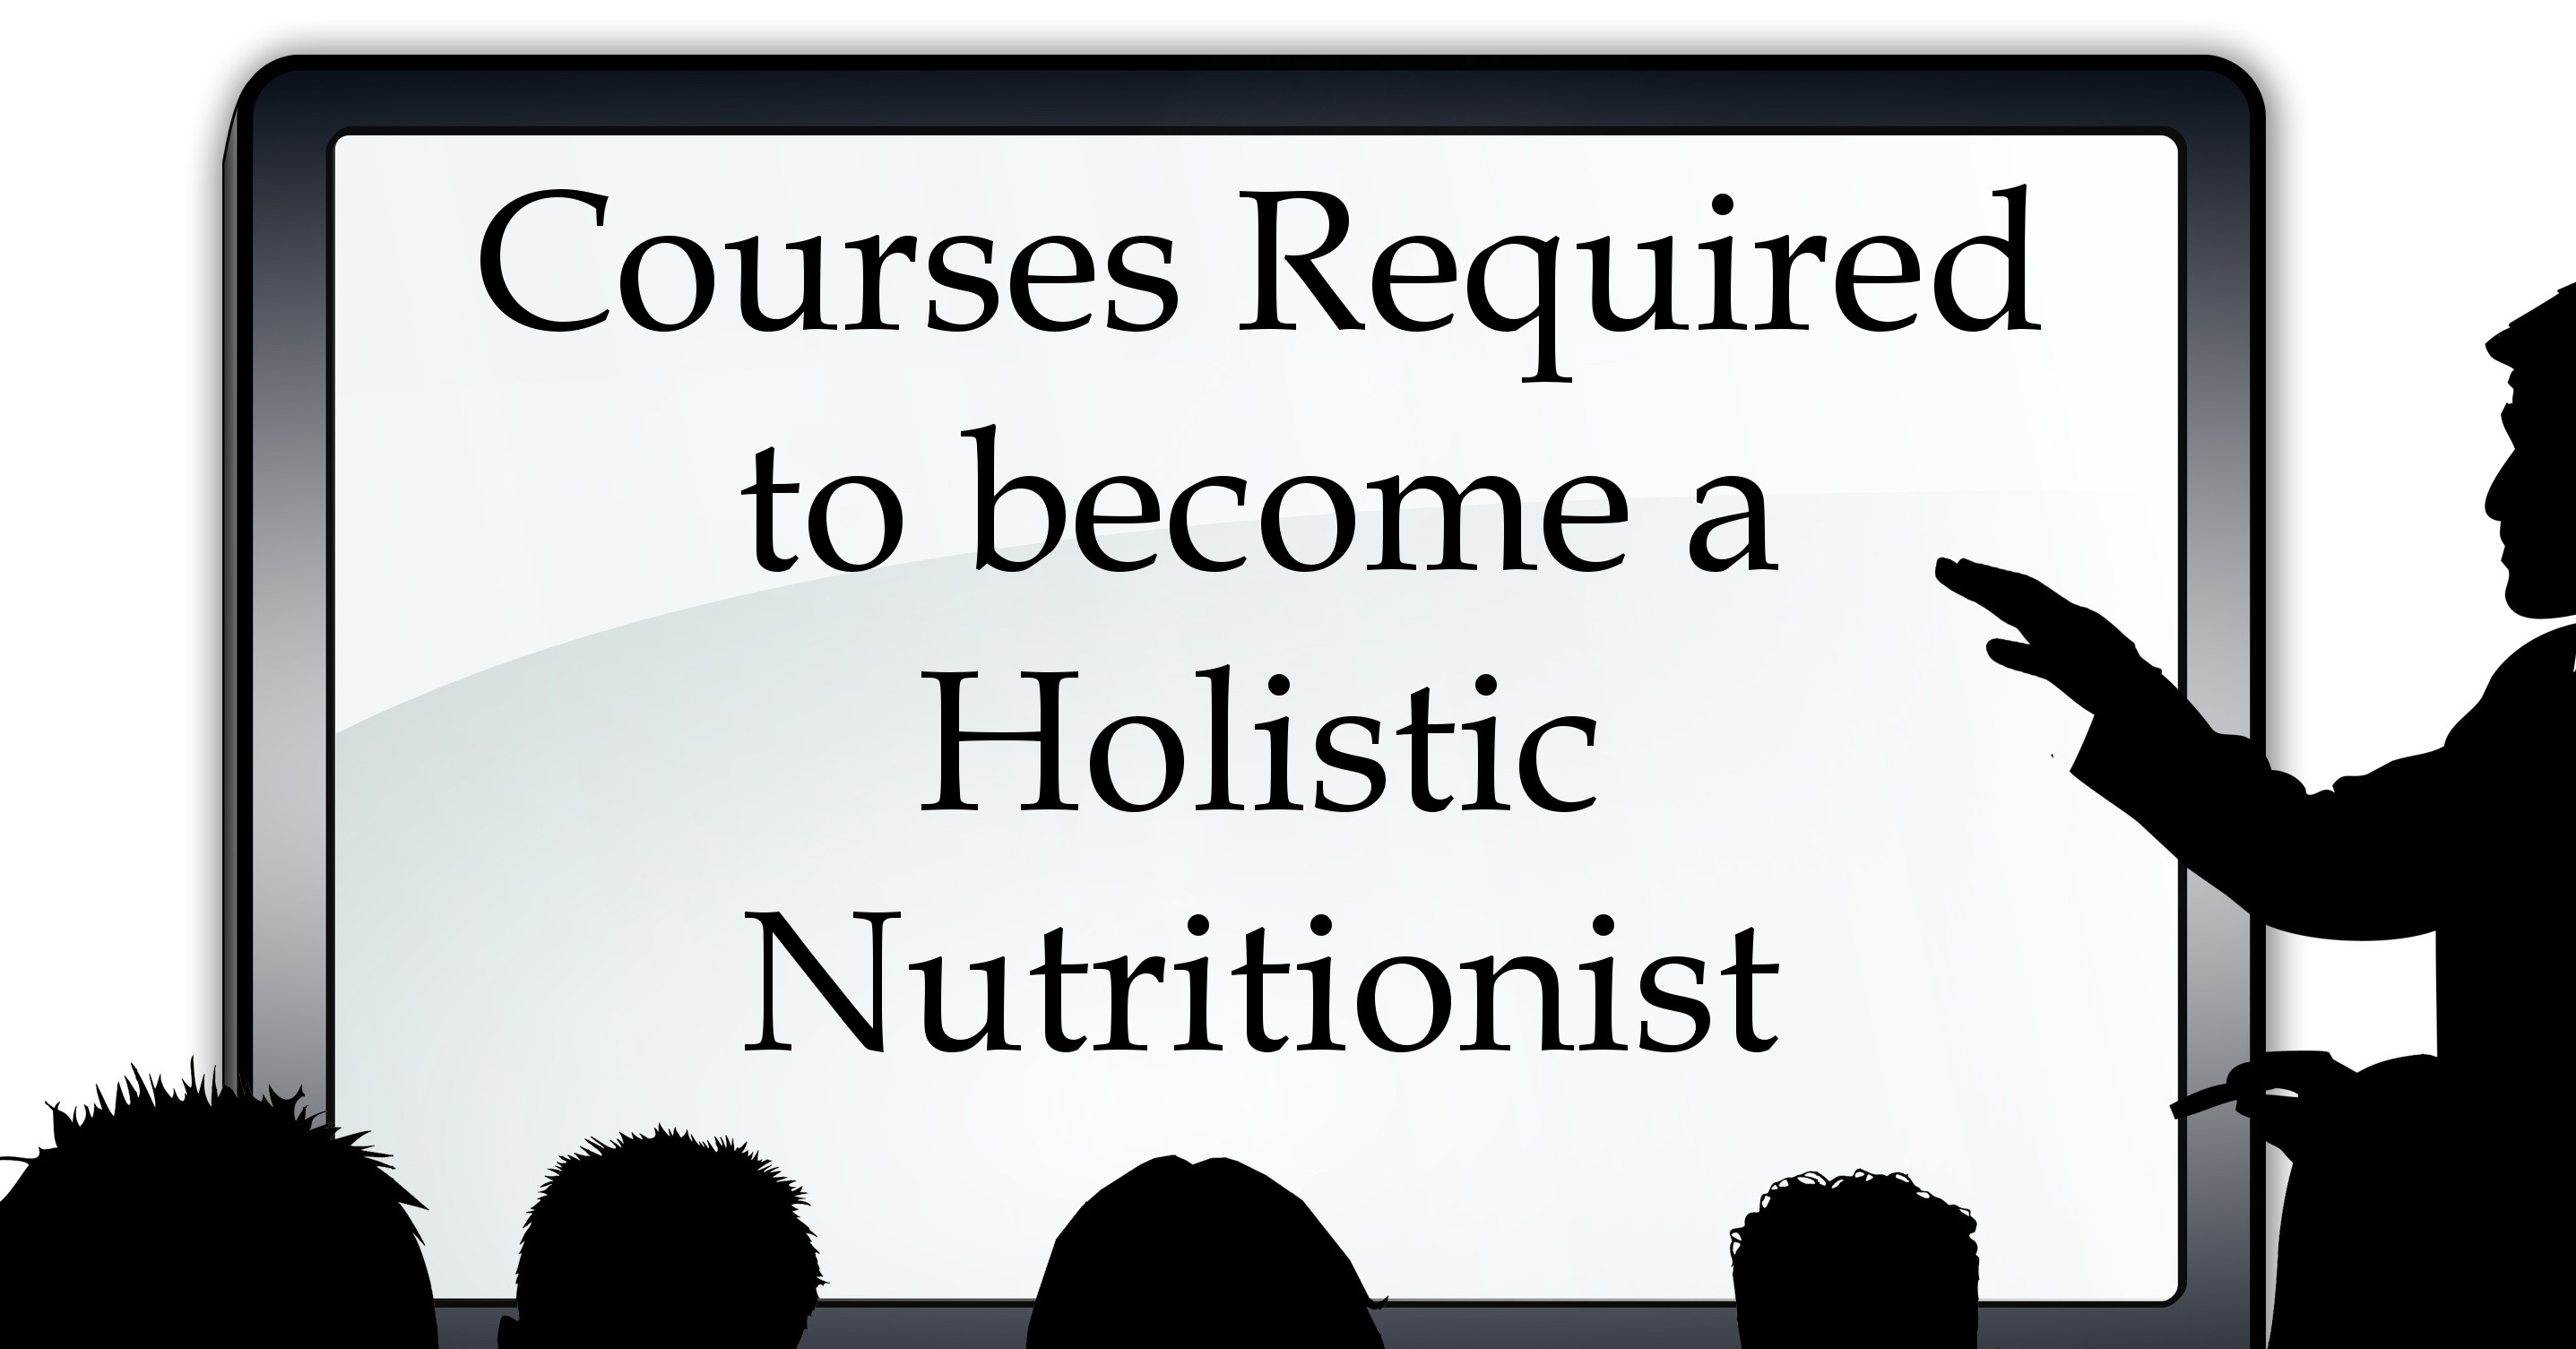 Holistic Health and Nutrition jamaica college subjects